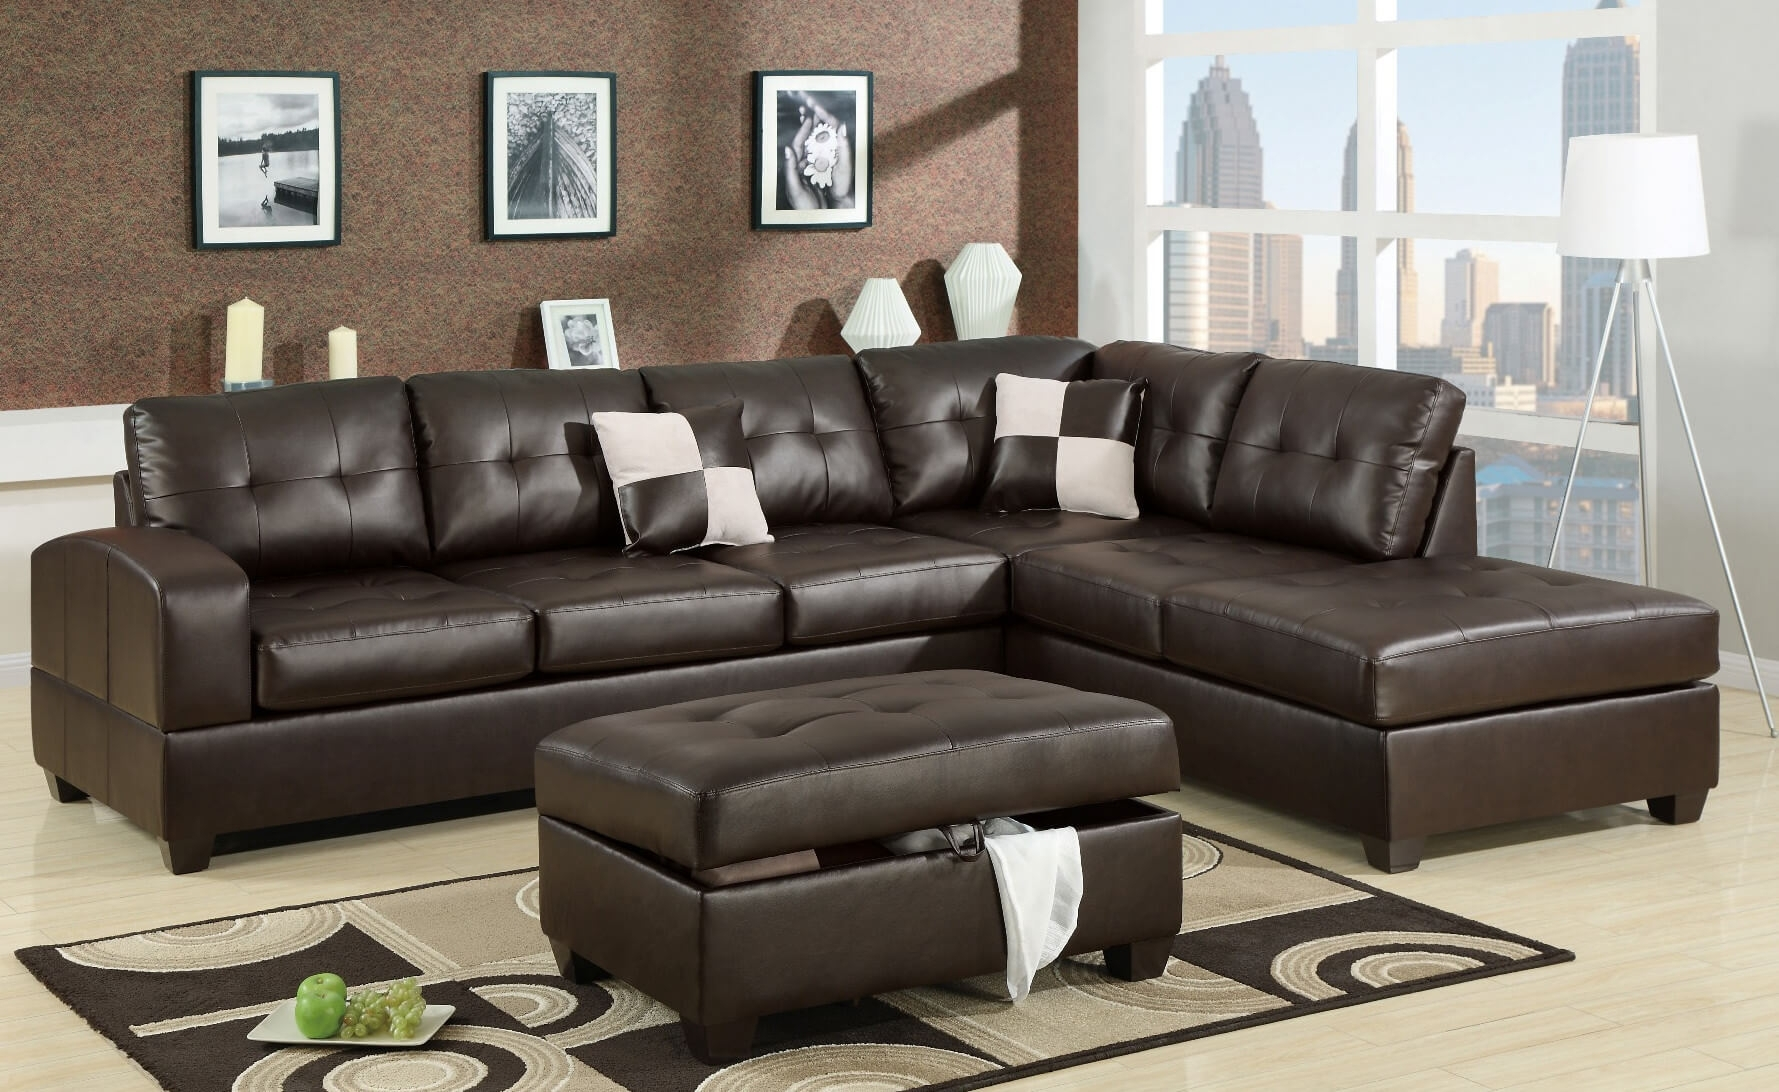 100 Awesome Sectional Sofas Under $1,000 (2018) Inside Sectional Sofas Under  (Image 1 of 10)